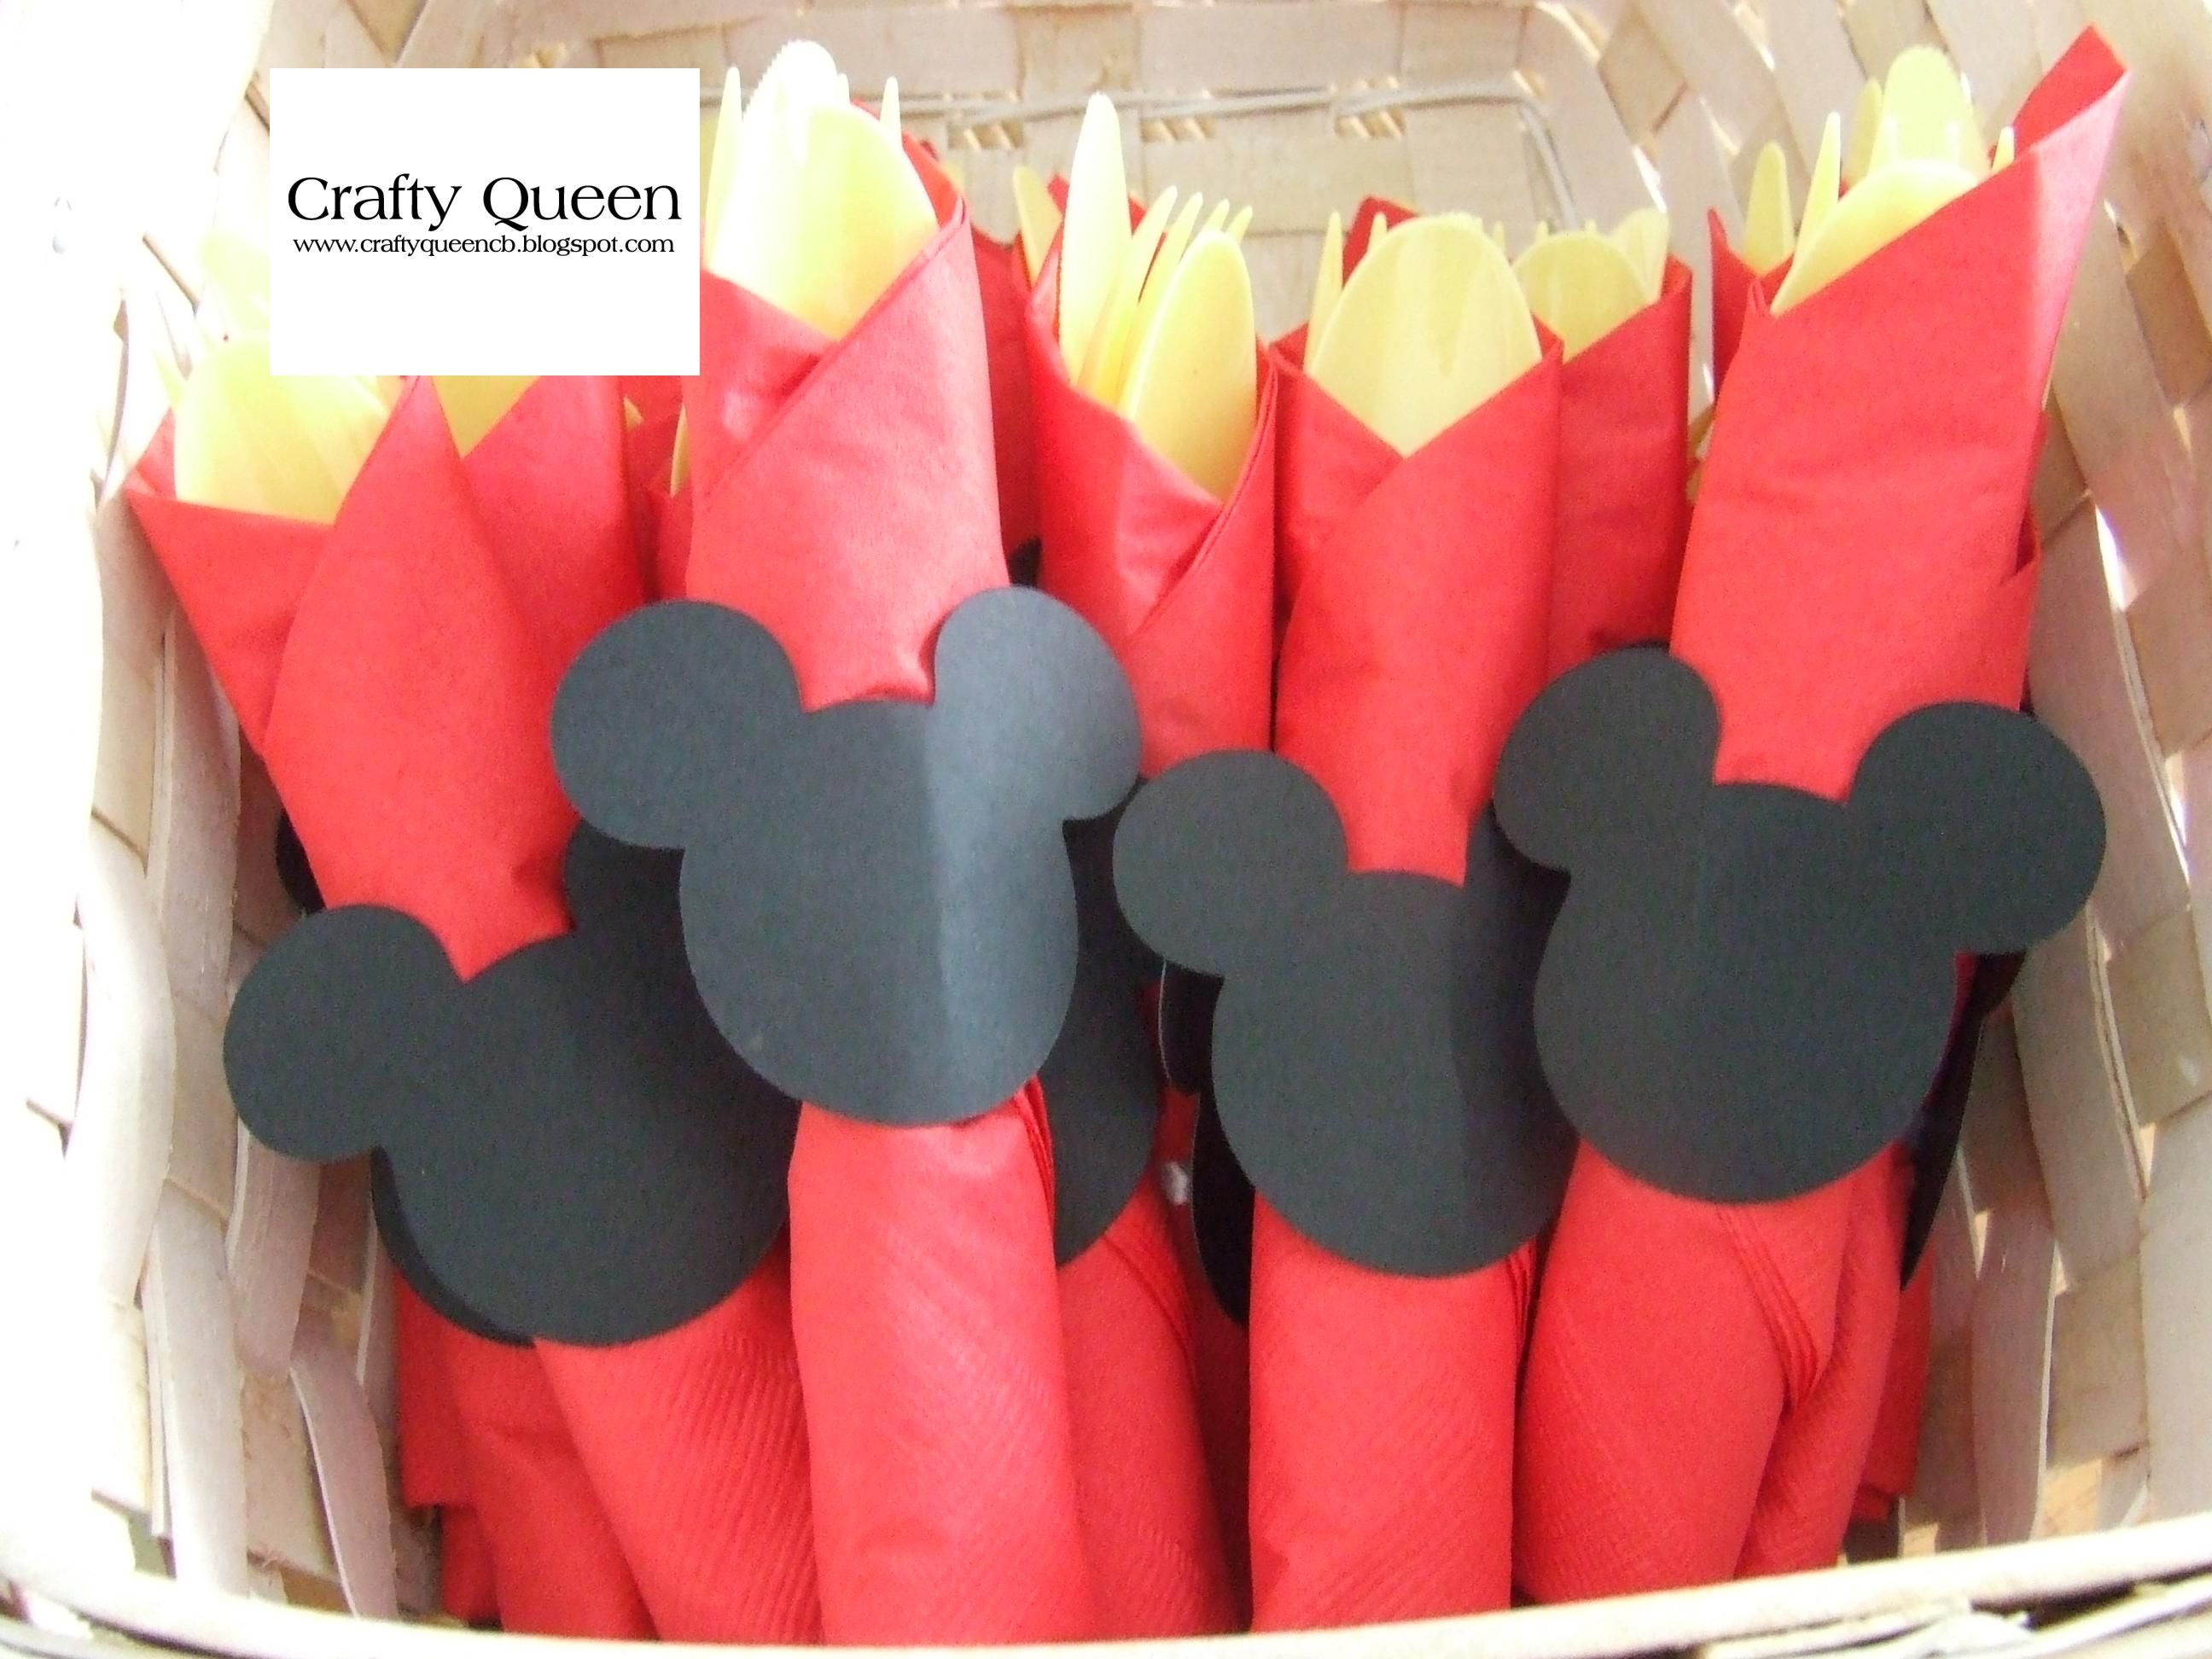 Silverware for our grandson's 2nd Mickey Mouse themed birthday party